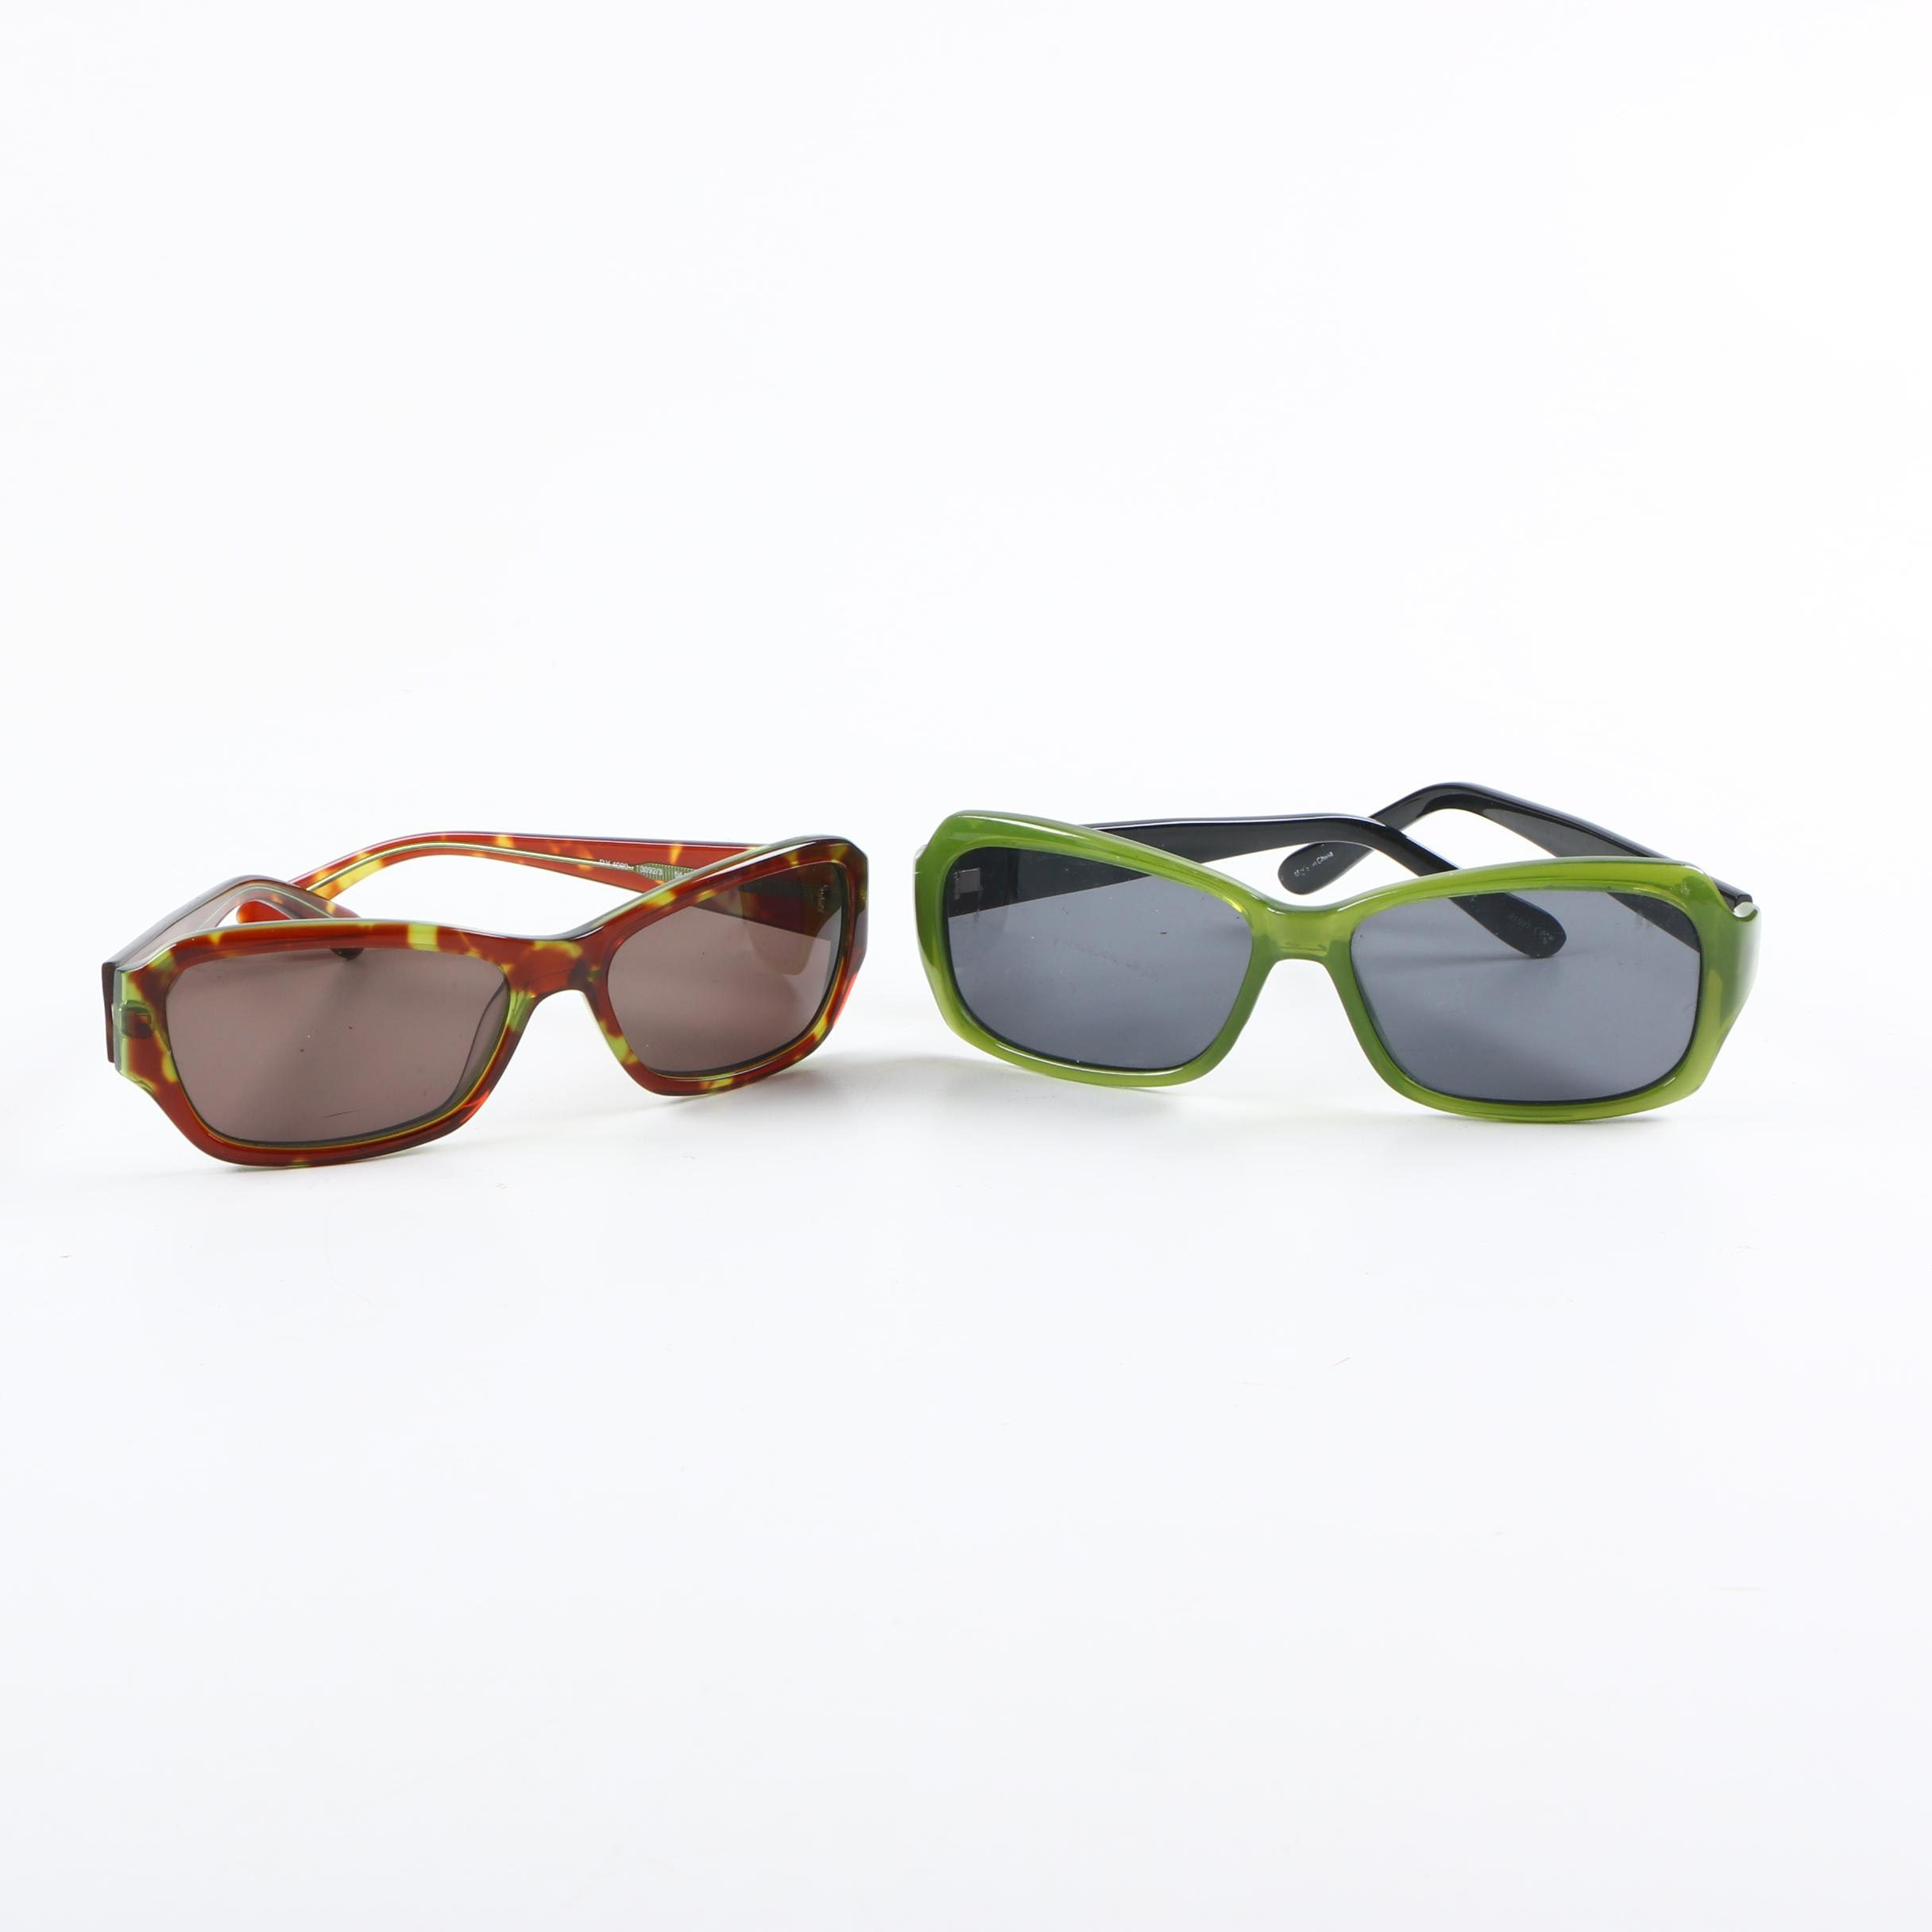 Women's Sunglasses Including DKNY